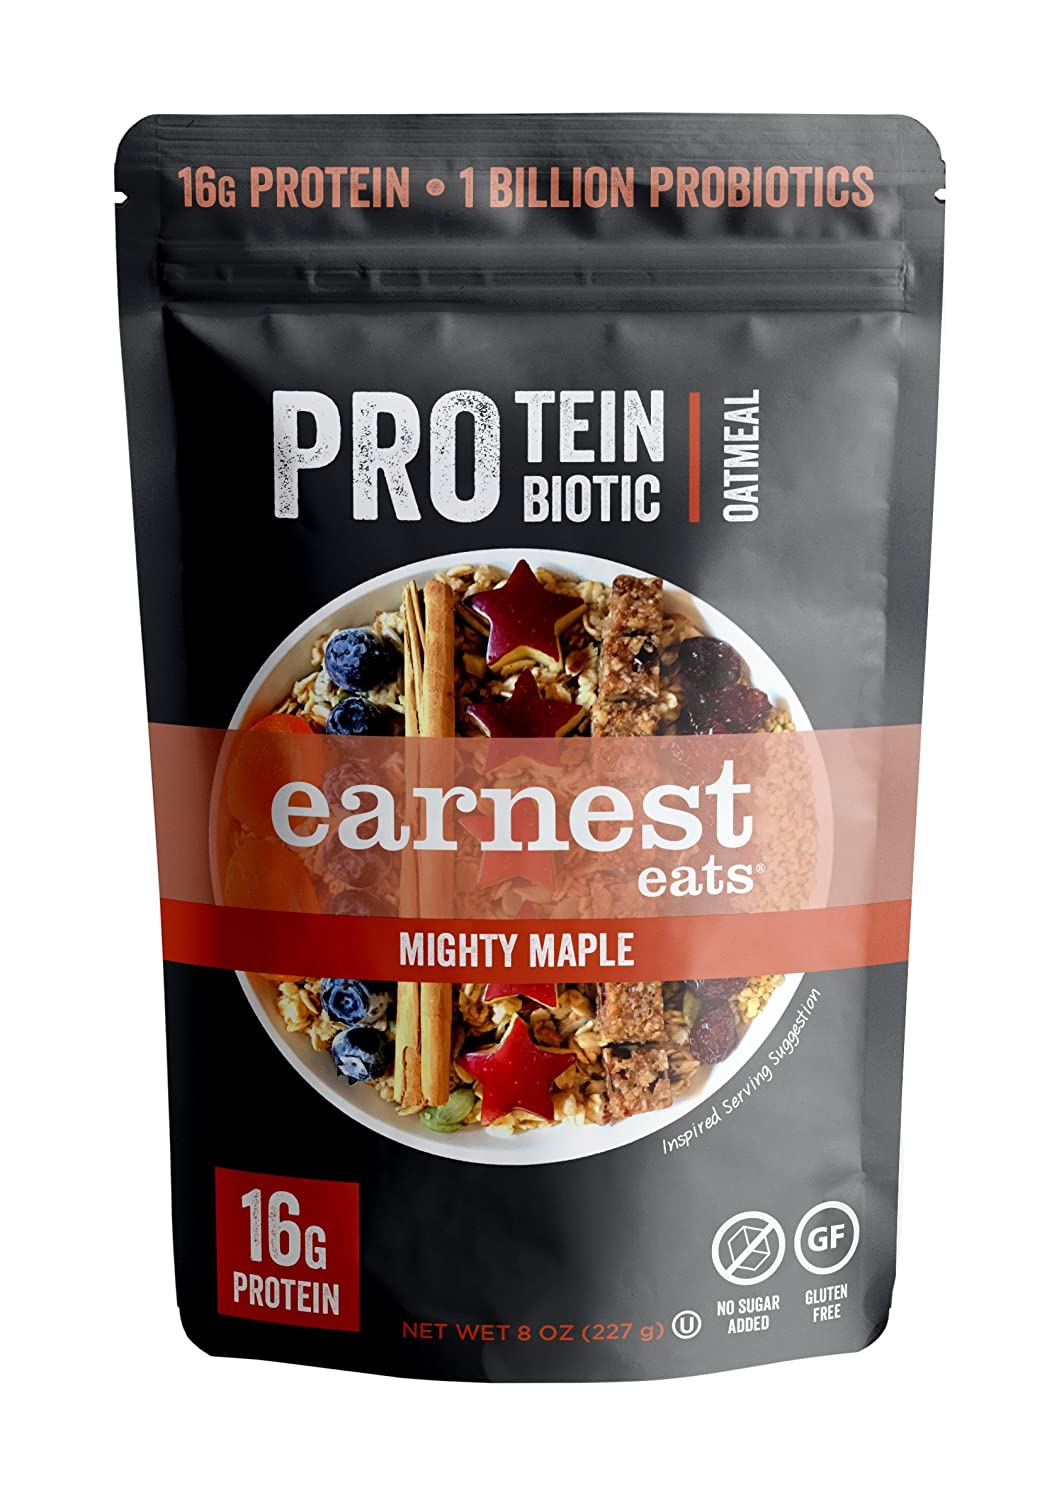 Earnest Eats PRO: Protein + Probiotic Superfood Oatmeal, Gluten Free, Mighty Maple, 4 Servings, 16g Protein per Serving, 8 Ounce (Pack of 1)